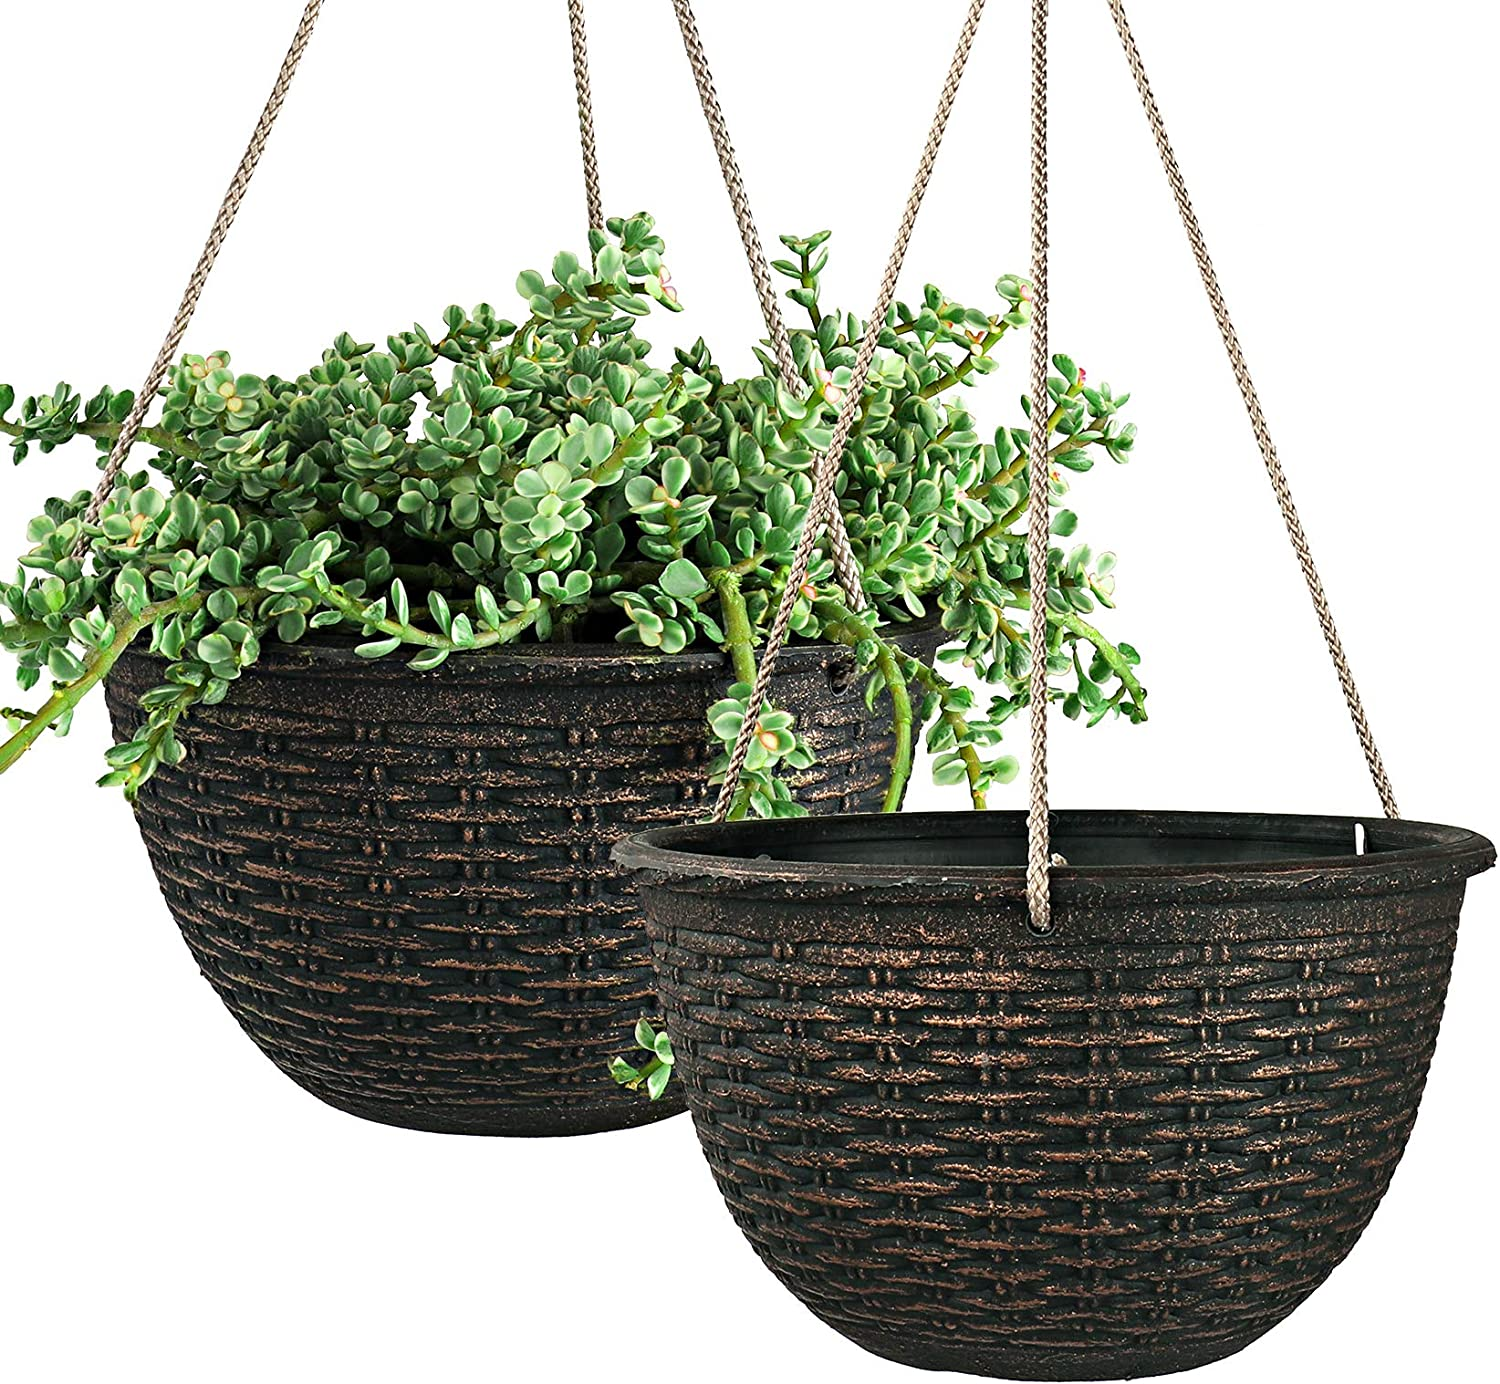 Hanging Planters for Outdoor Plants 9.8 Inch Garden Po Direct stock discount Planter High order